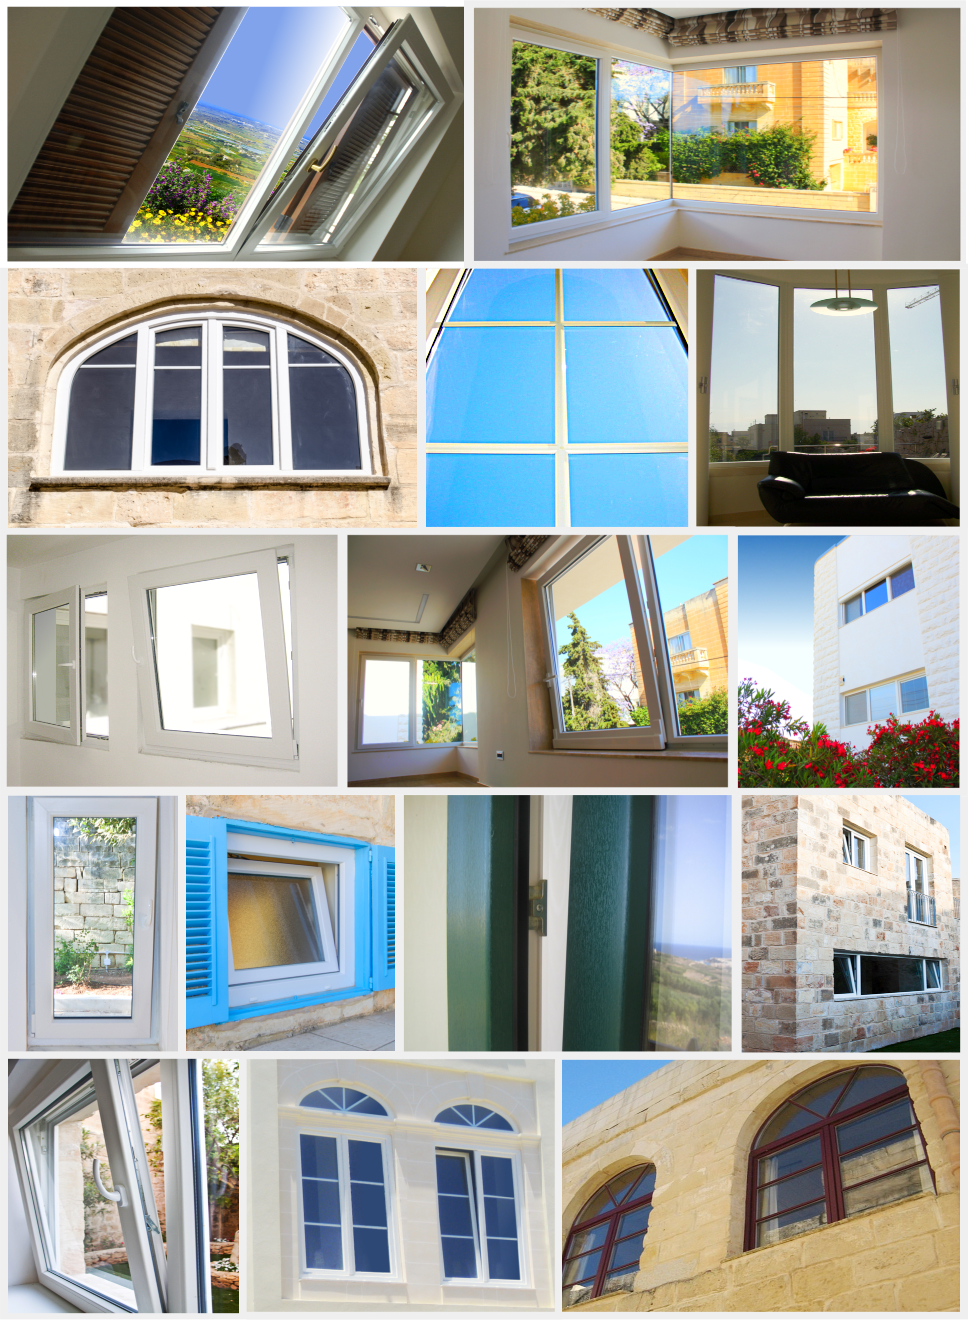 Windows Designed and Supplied by AM Projects Malta